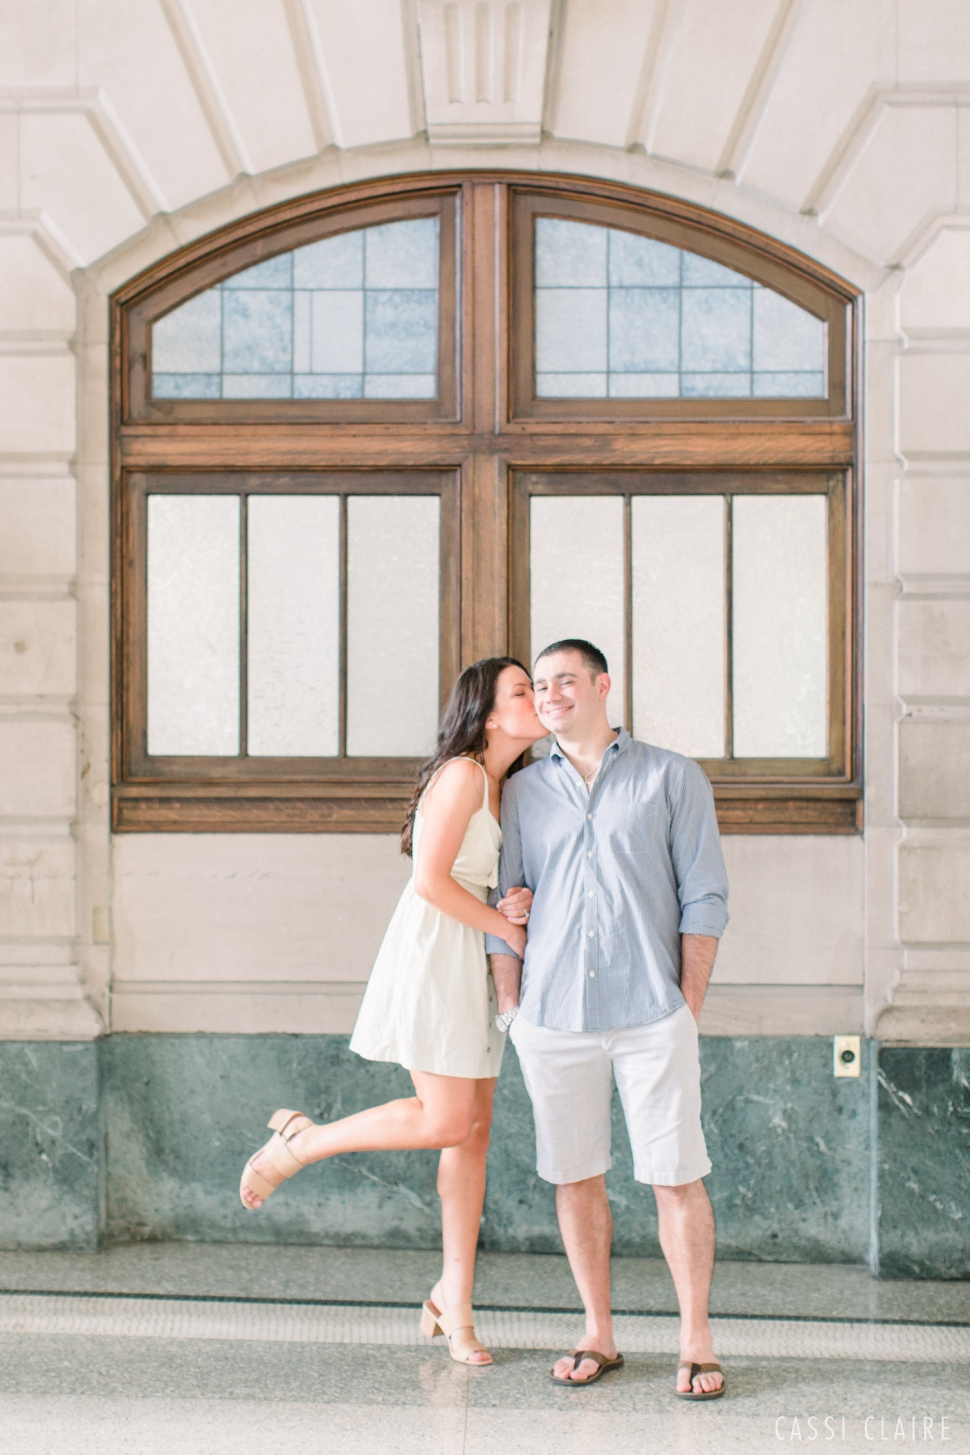 hoboken train station engagement photo